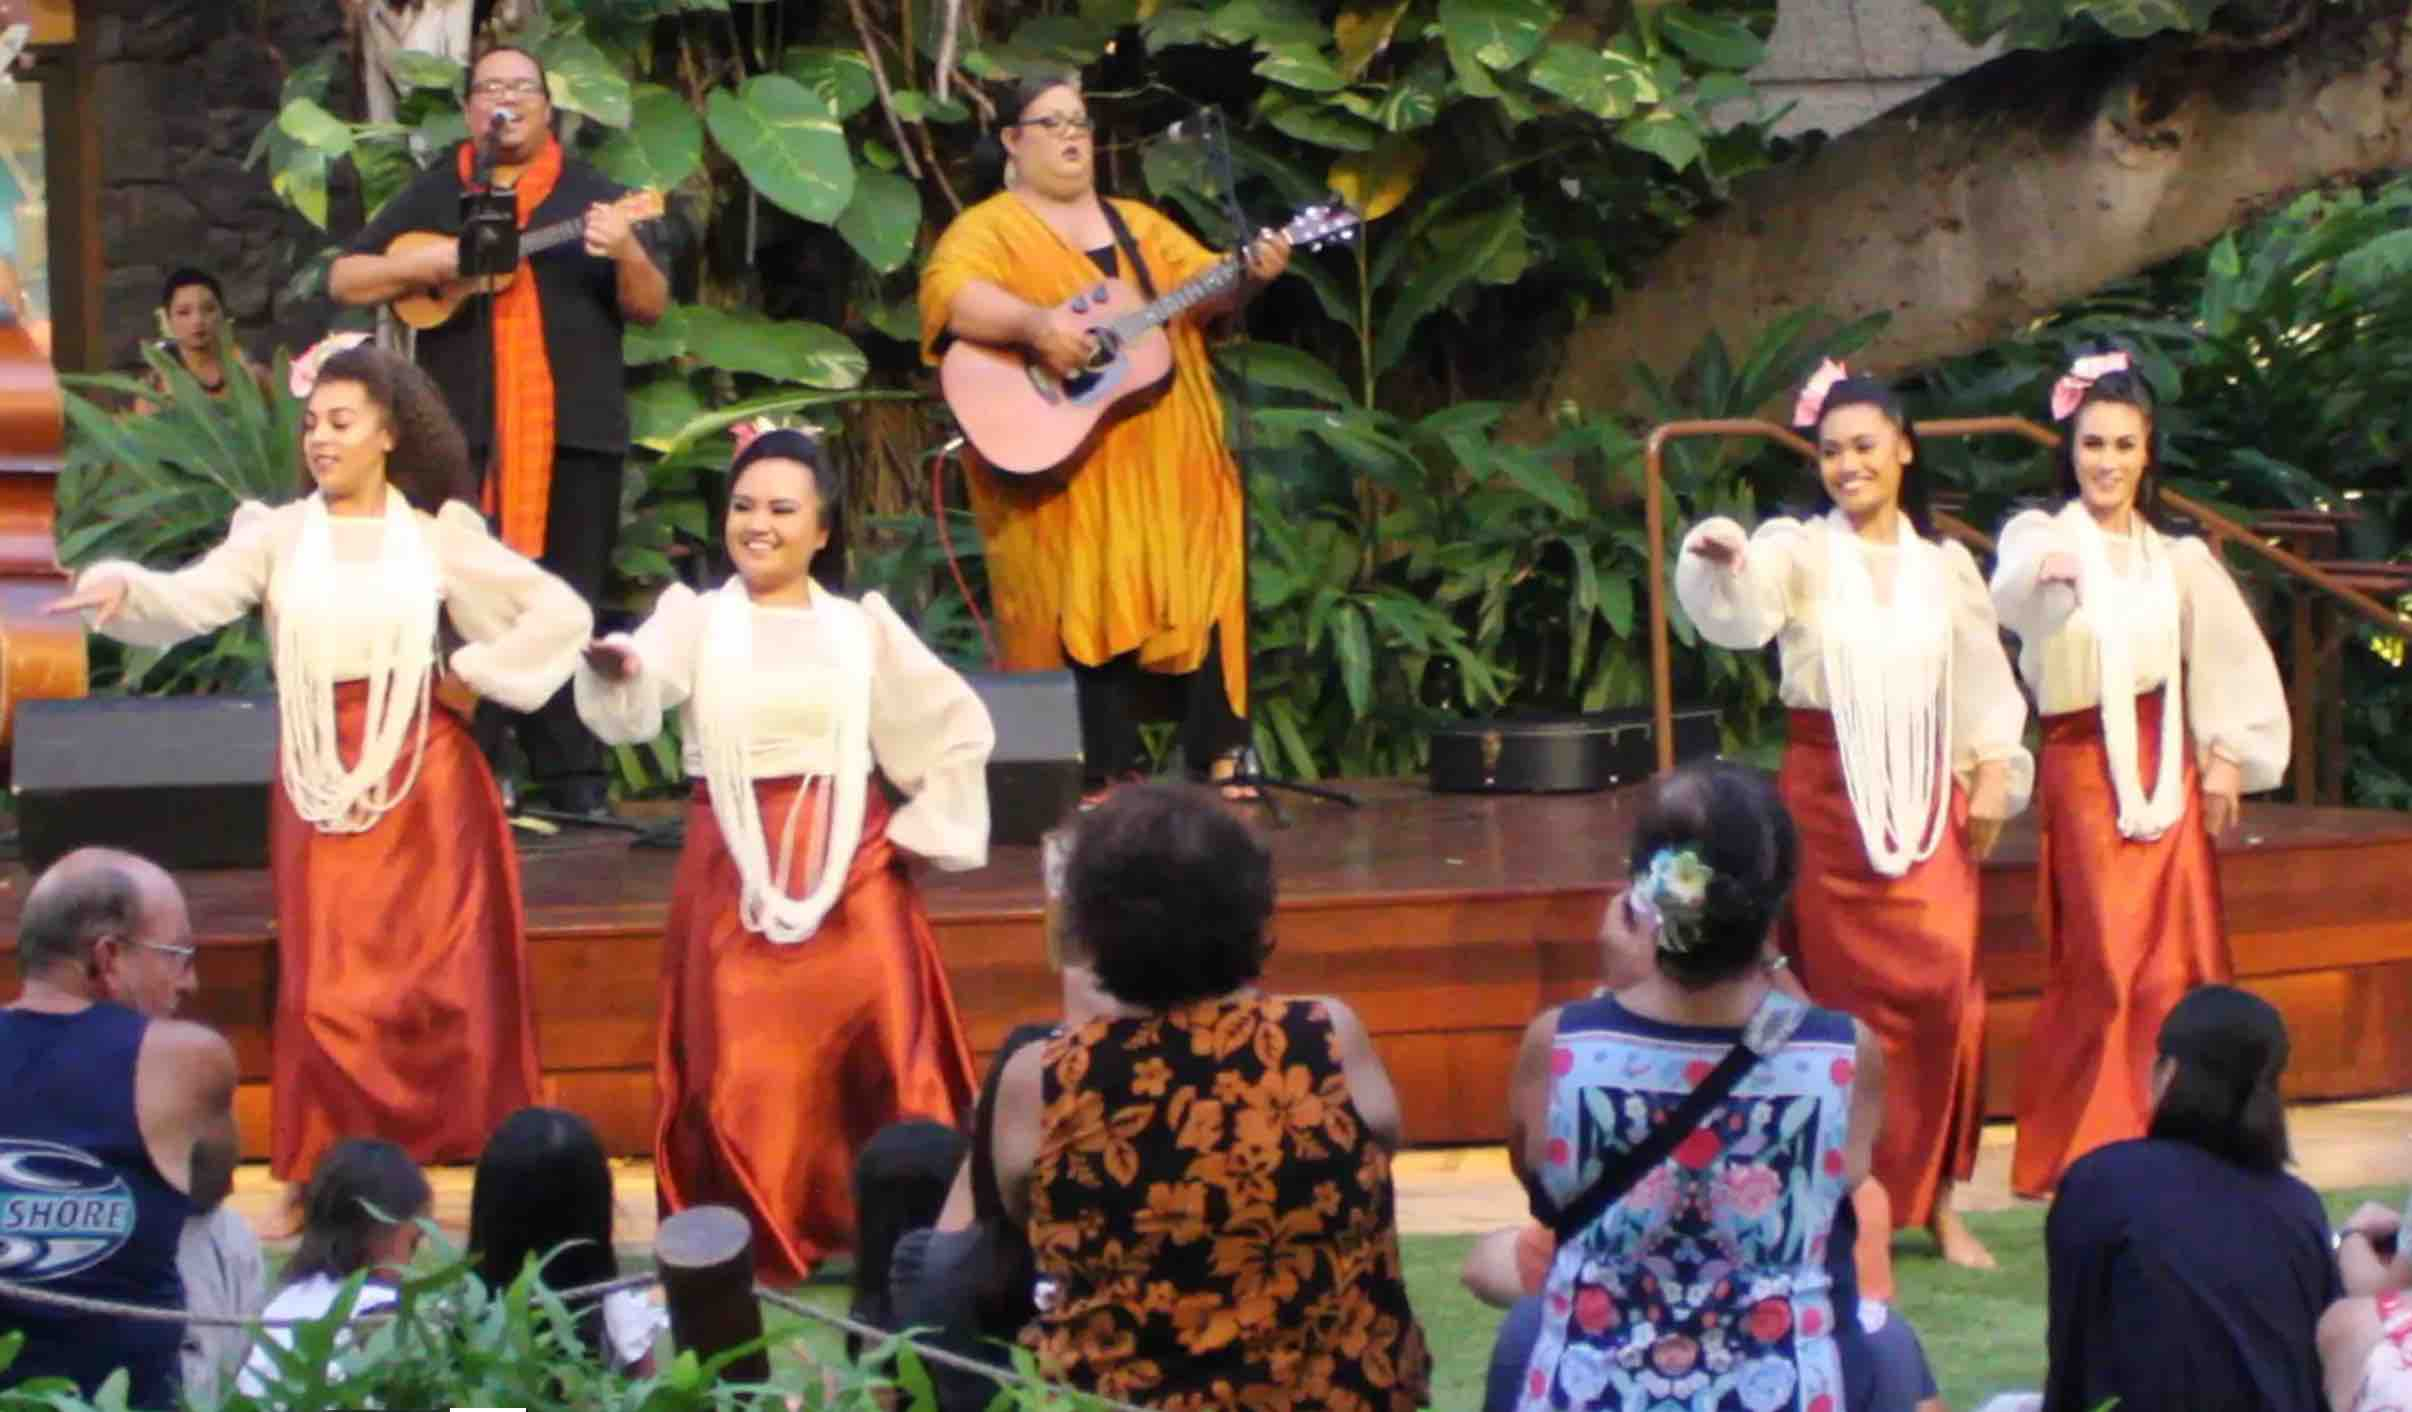 Sacred Hearts Academy's hula students perform at the Royal Hawaiian Center in Waikiki.